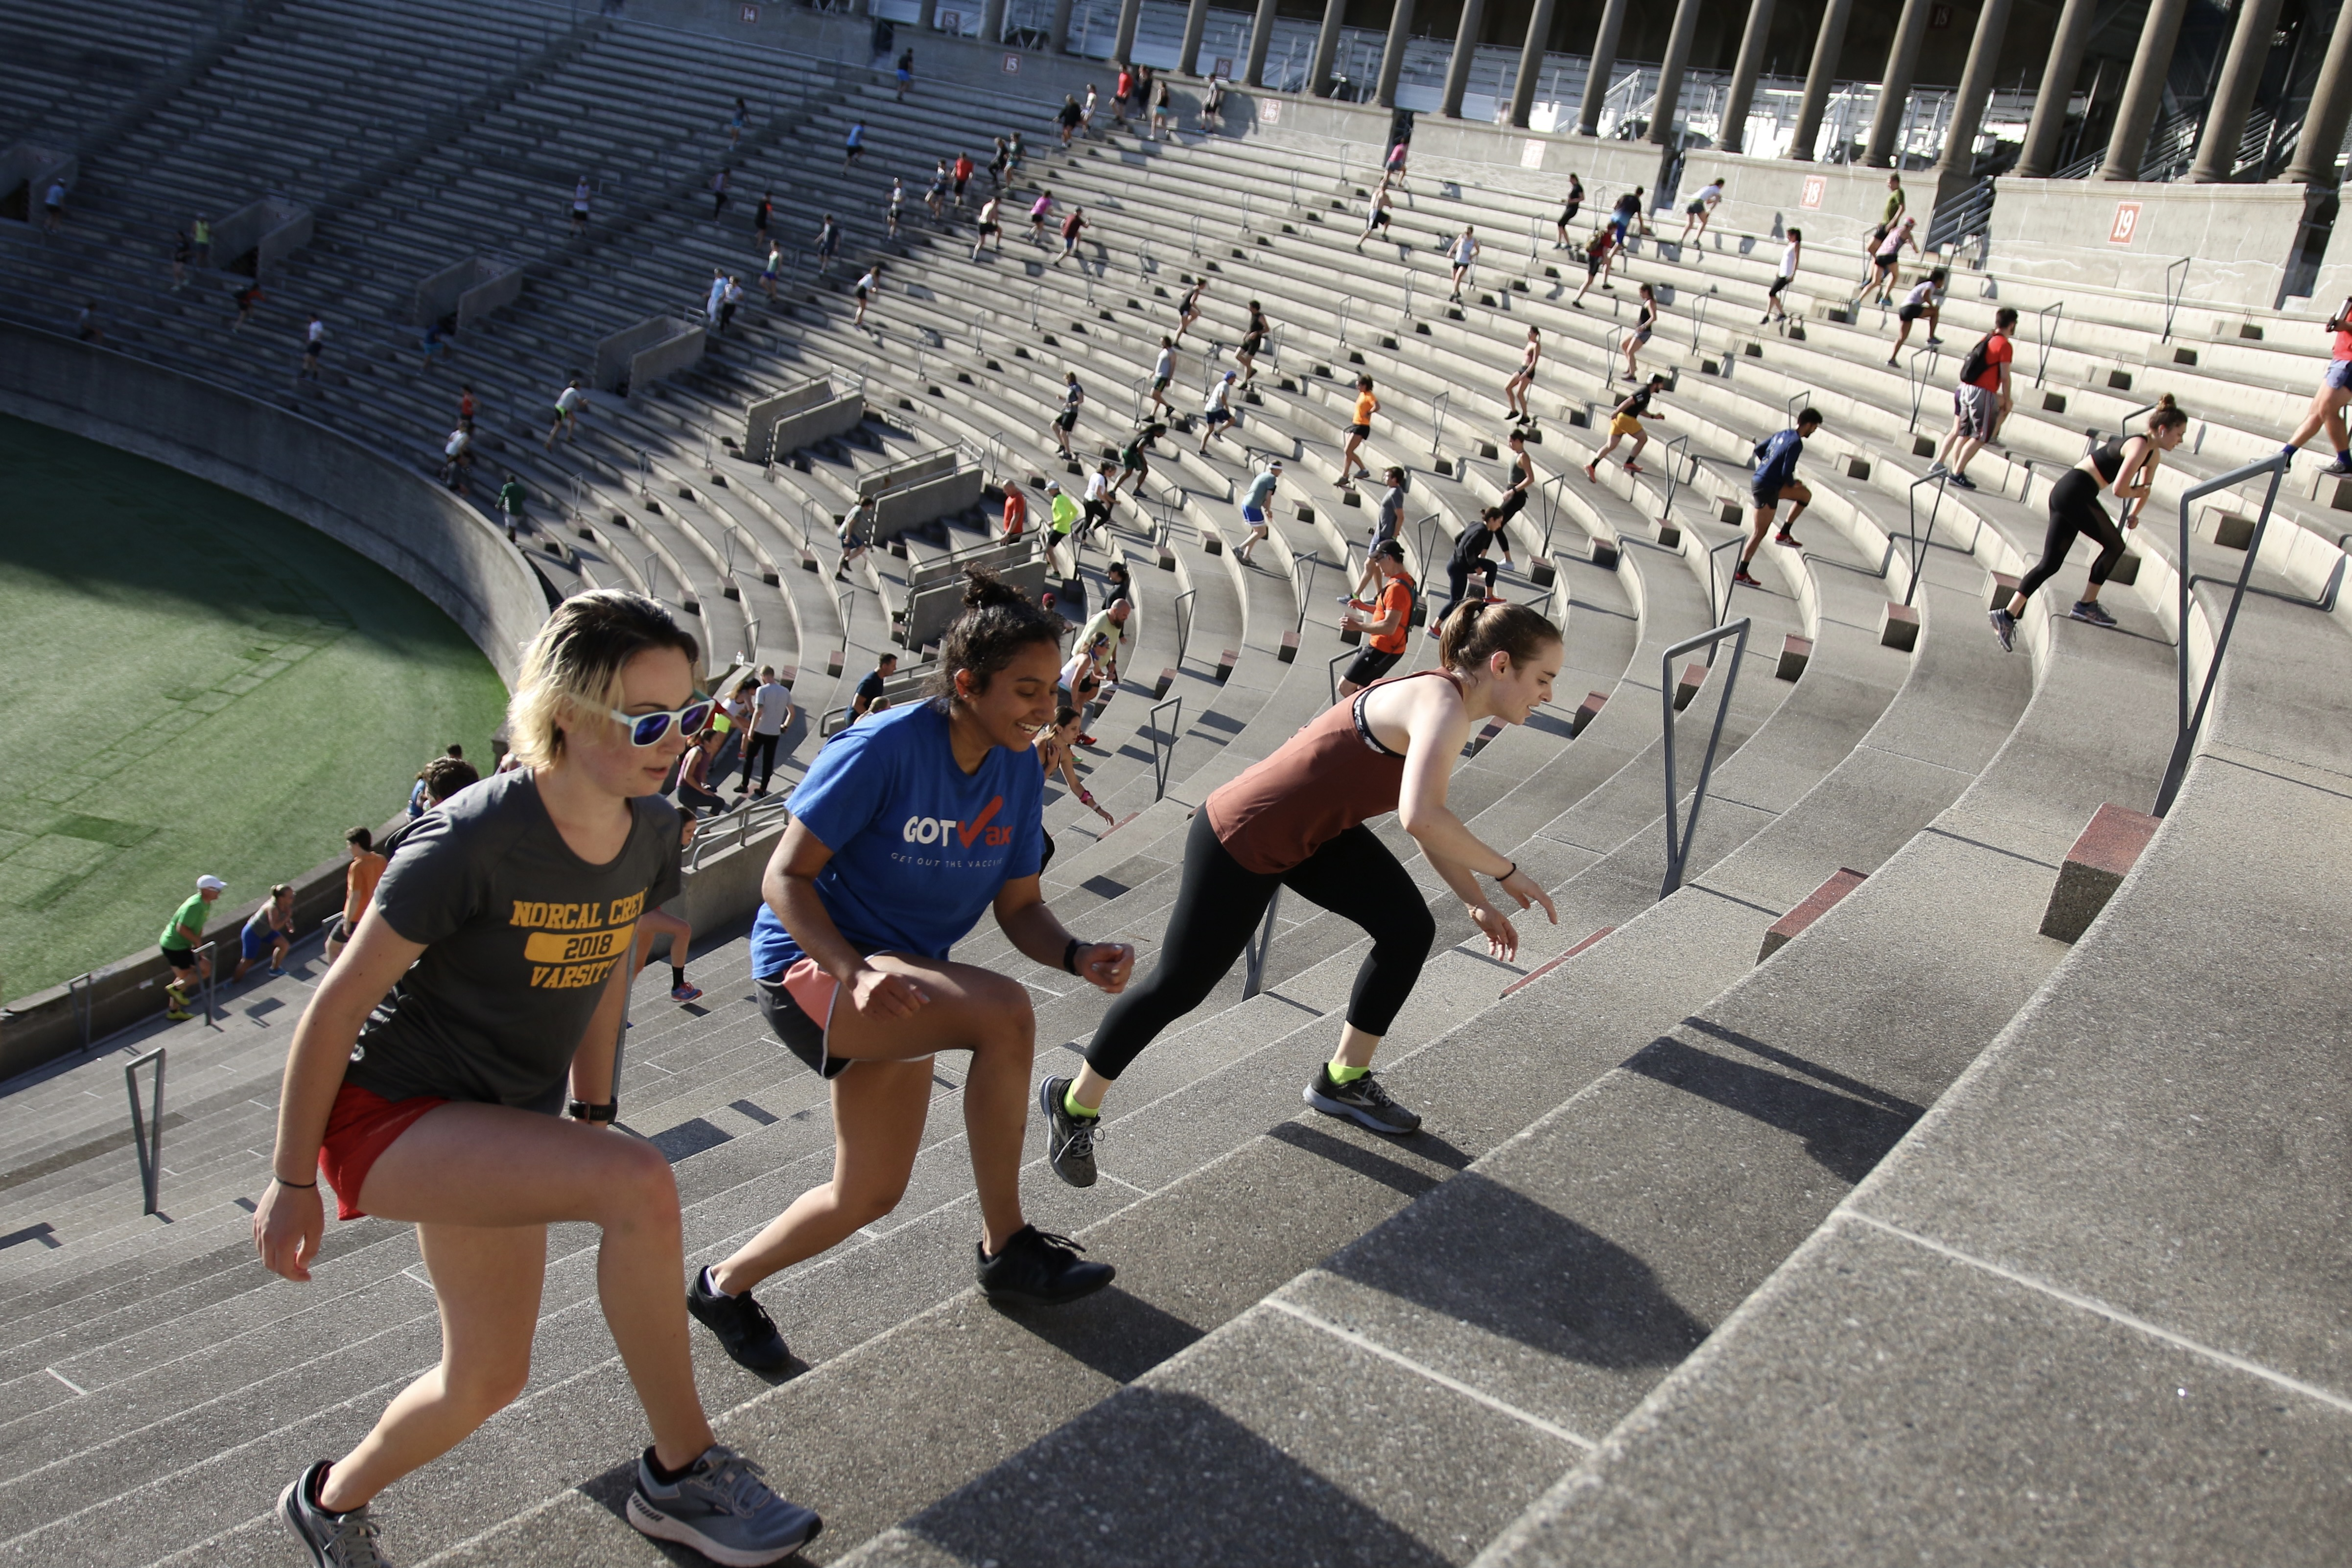 People climb the stairs at Harvard Stadium on June 23 as part of a weekly program hosted by the November Project.